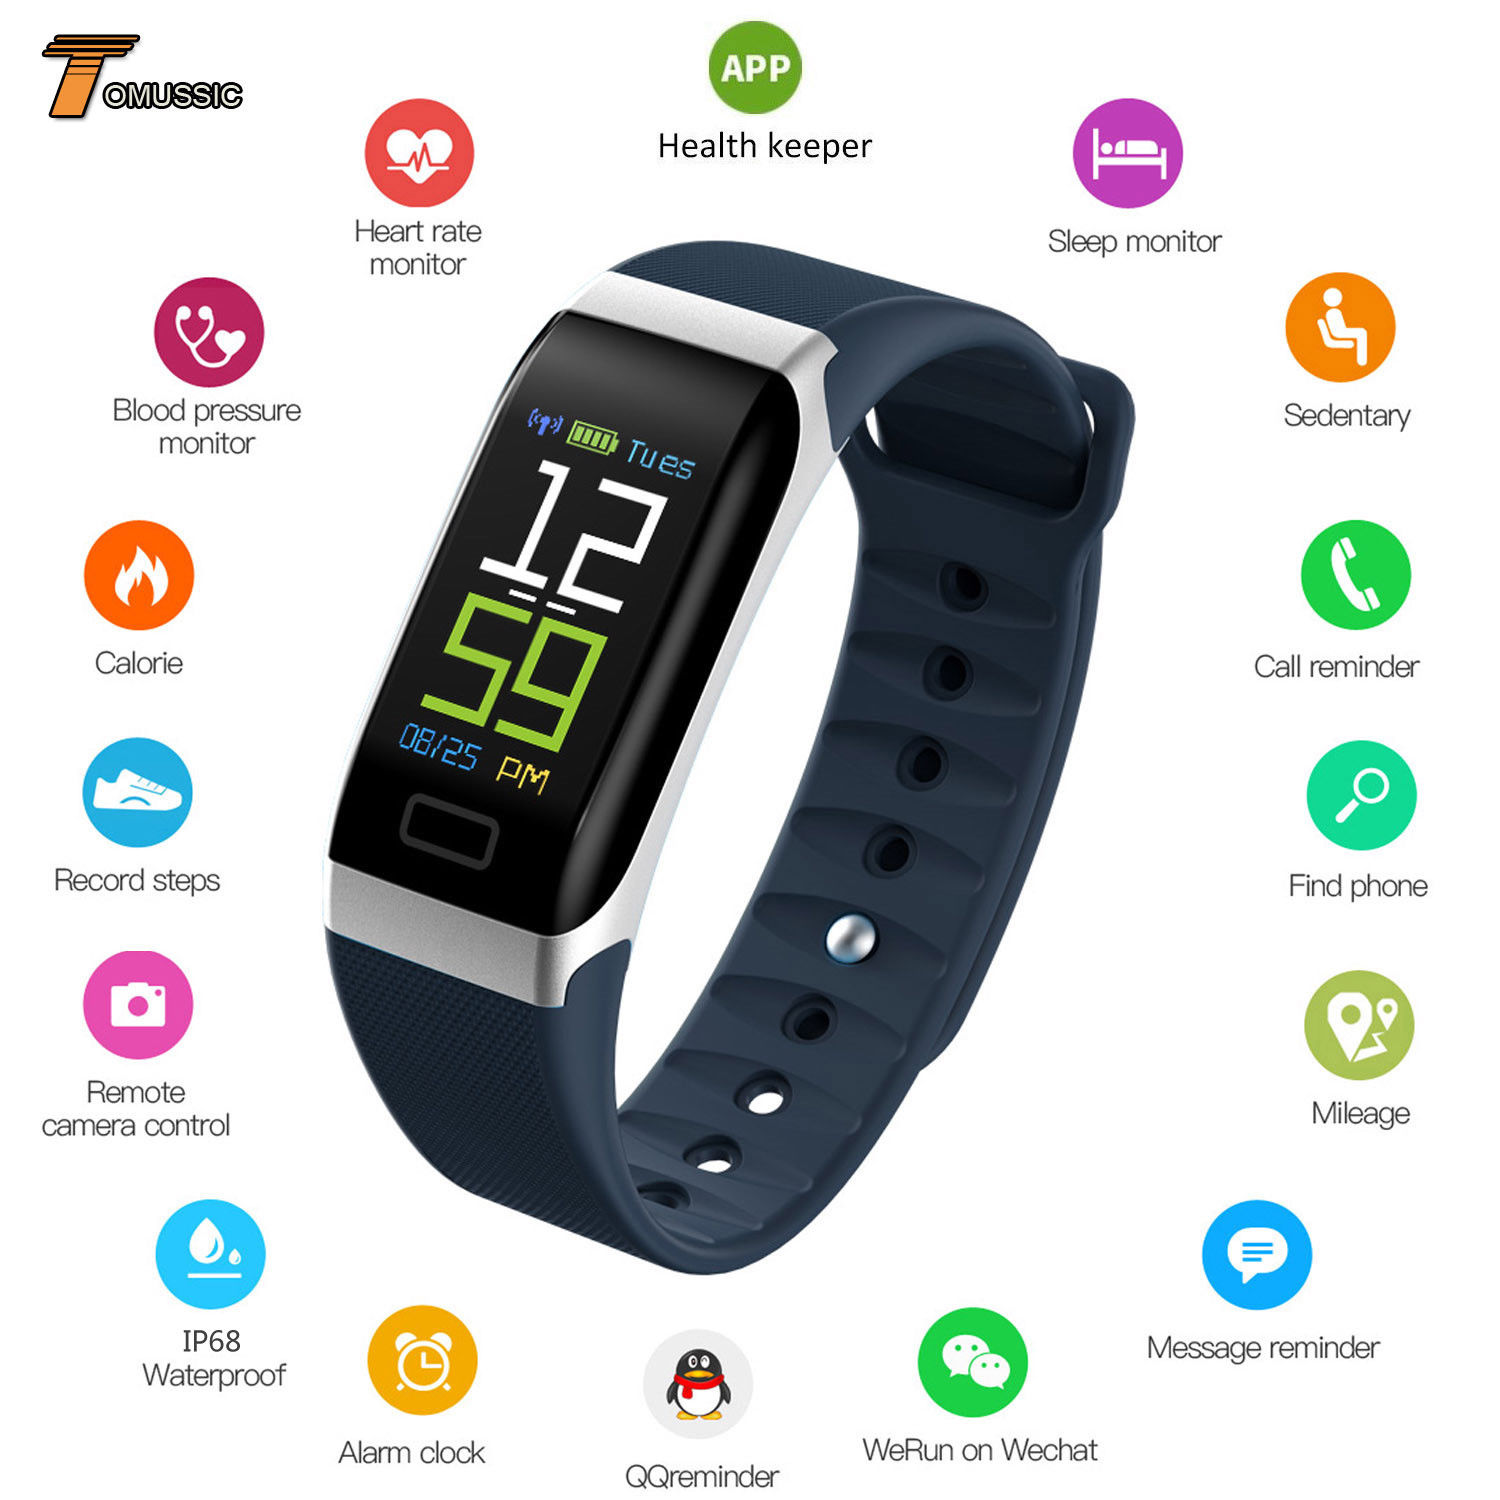 Bluetooth V4.0 <font><b>Smart</b></font> <font><b>Watch</b></font> Band <font><b>R7</b></font> IP68 Waterproof <font><b>Smart</b></font> Bracelet Wristband Remote Camera Call SMS Message Sleep Fitness Tracker image